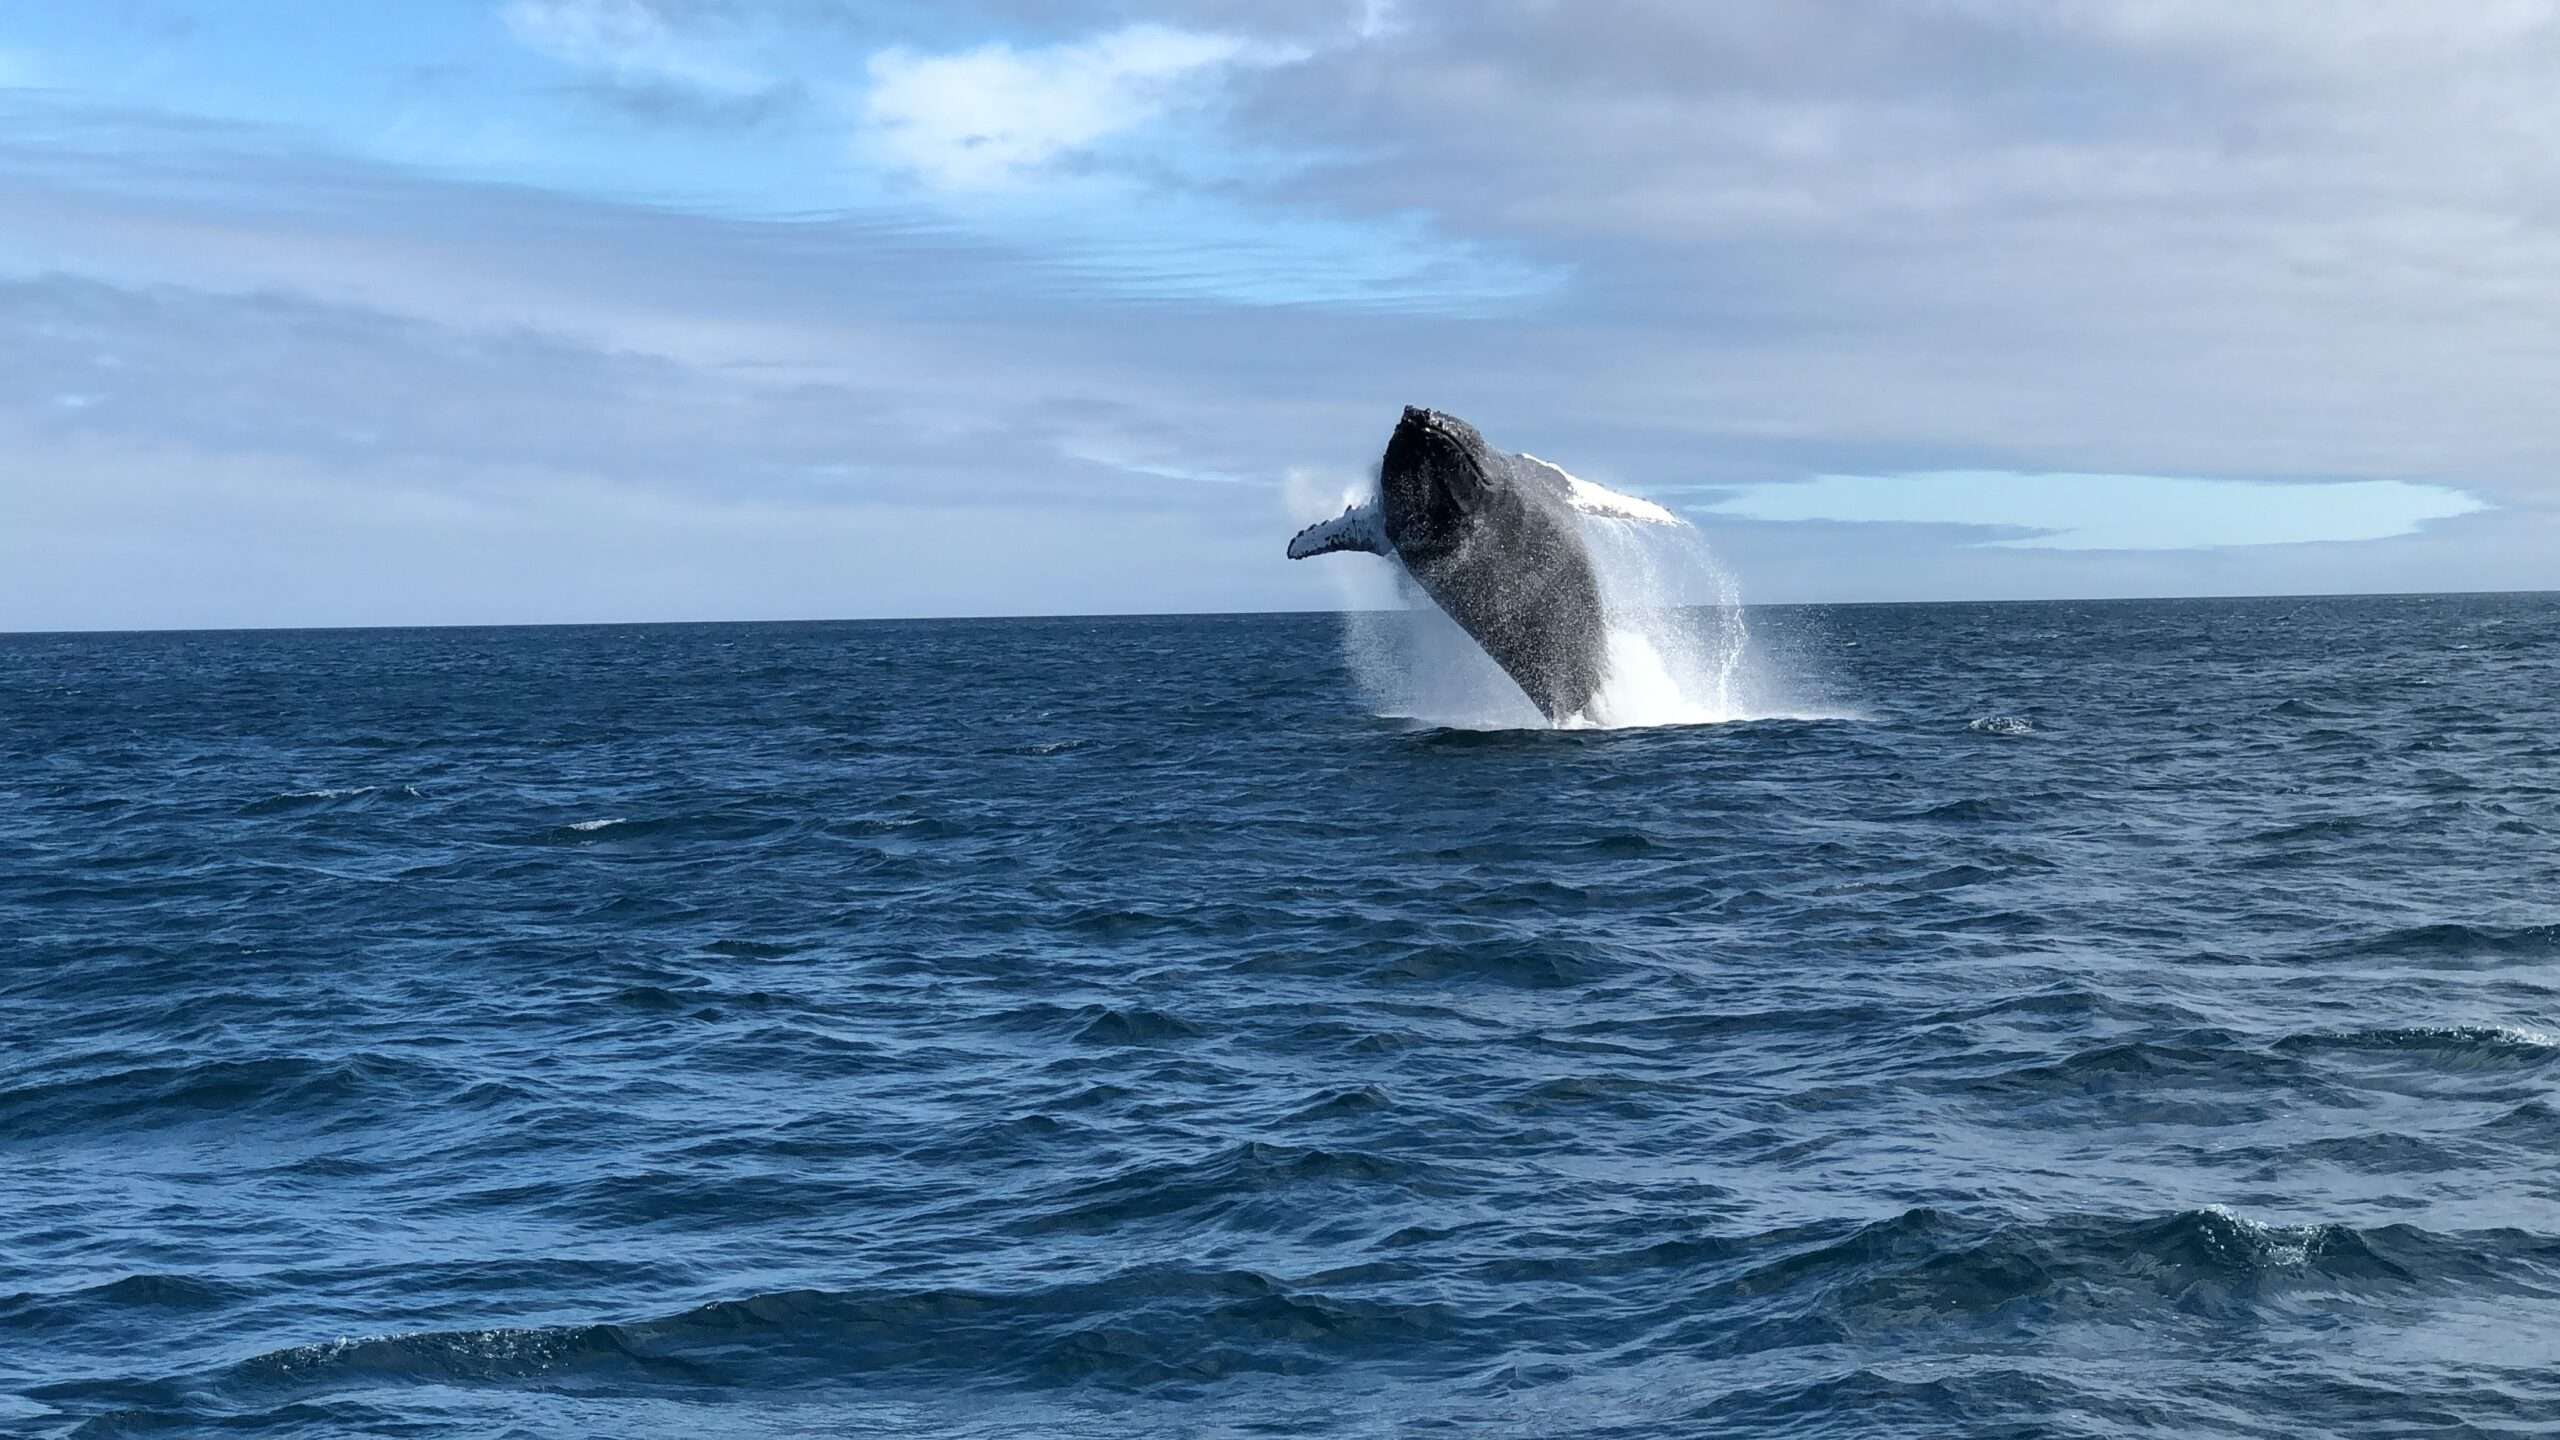 whale jumps out of the water, seen during a Galápagos island travel tour